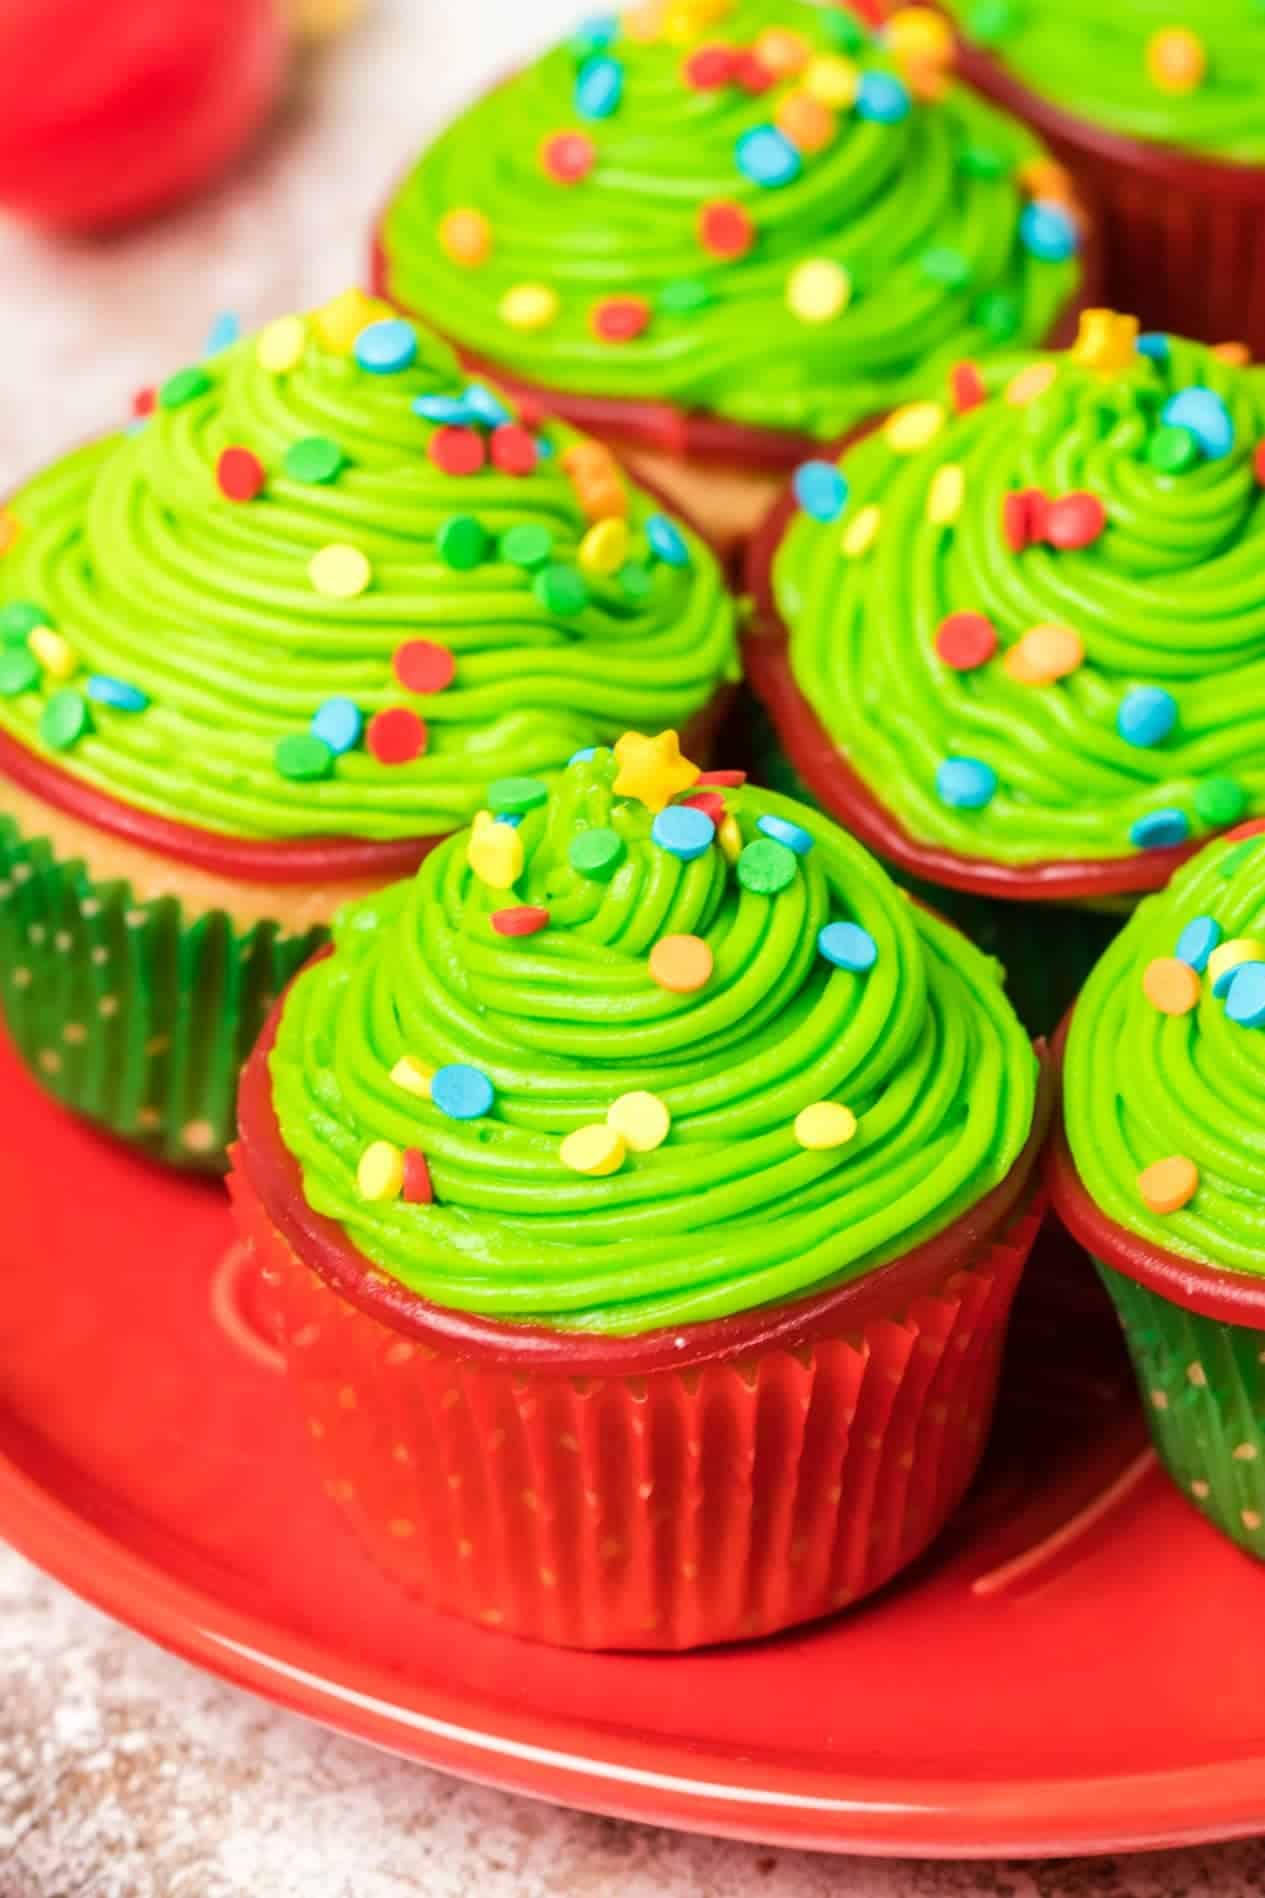 Christmas tree cupcakes on a red platter.